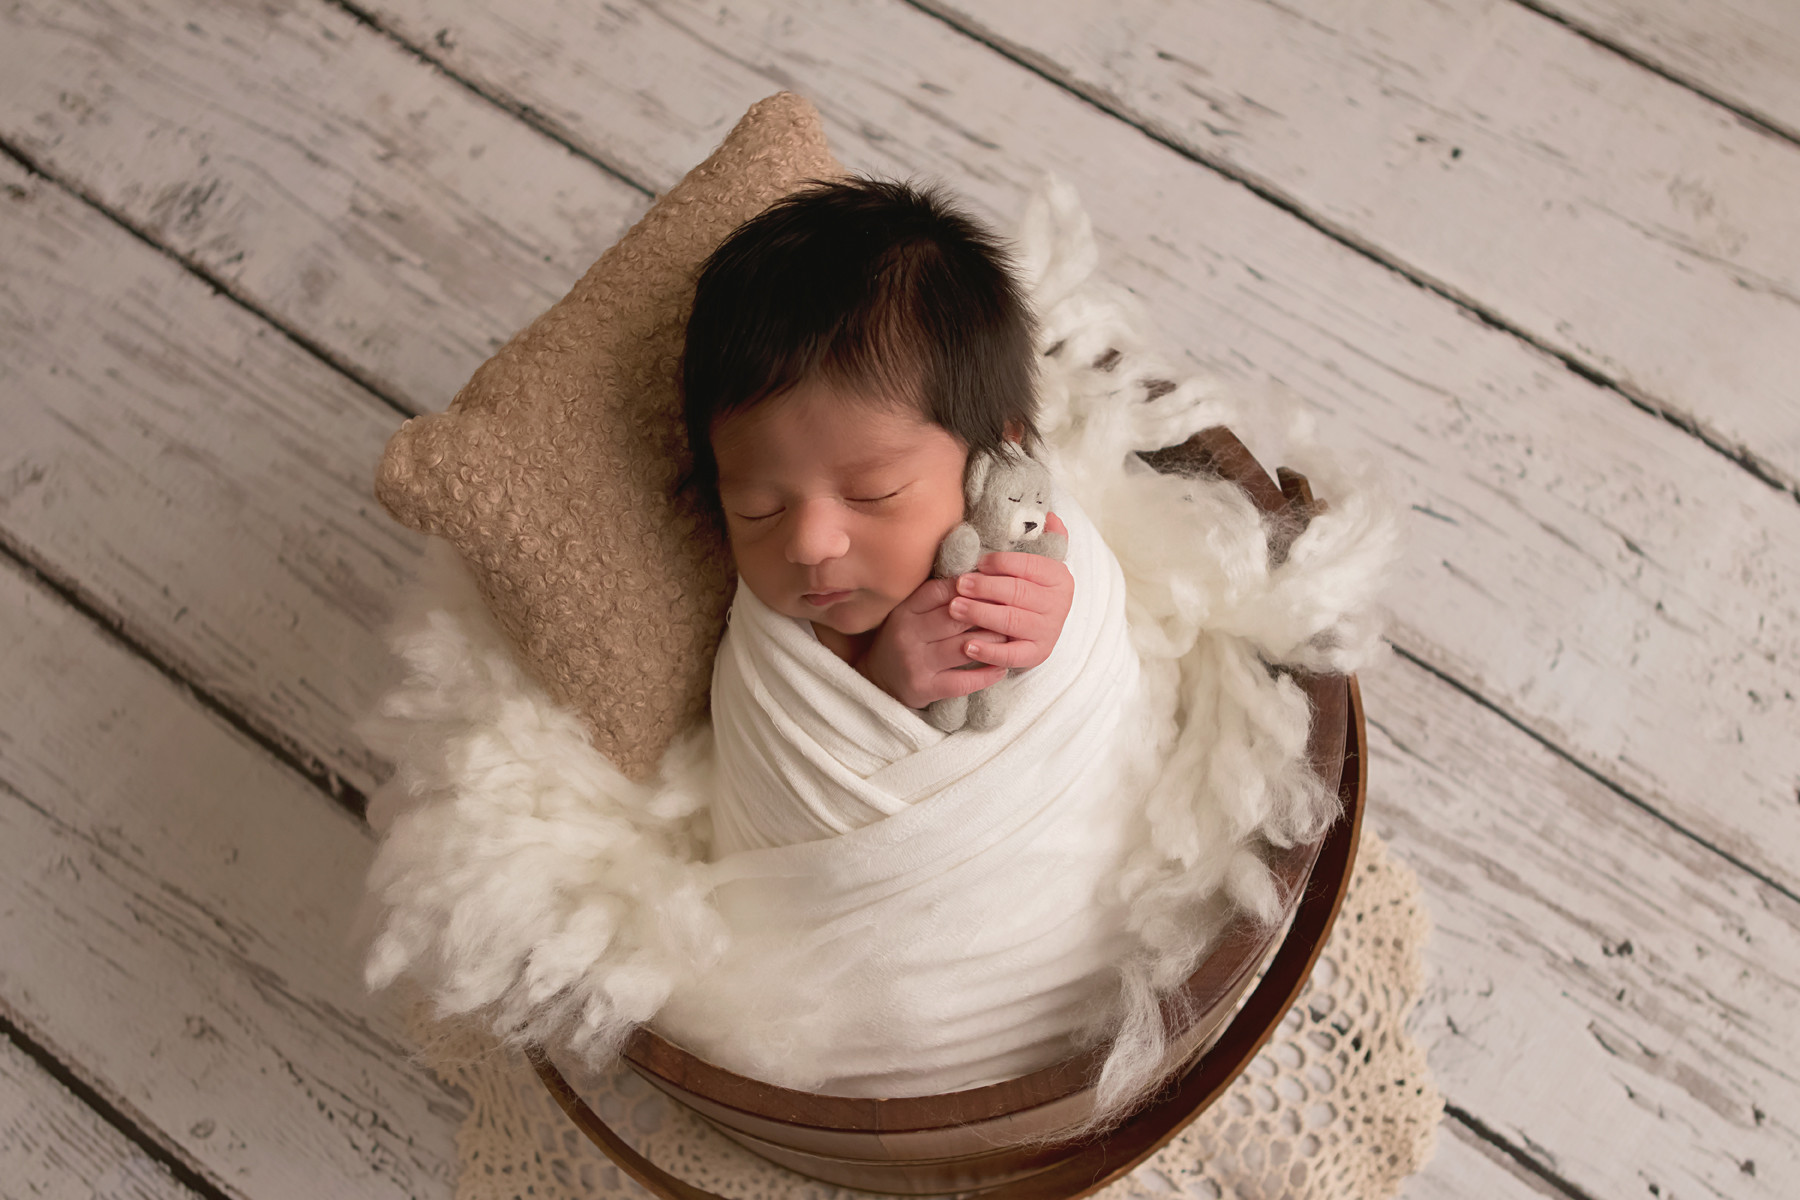 Newborn Session - Baby Only